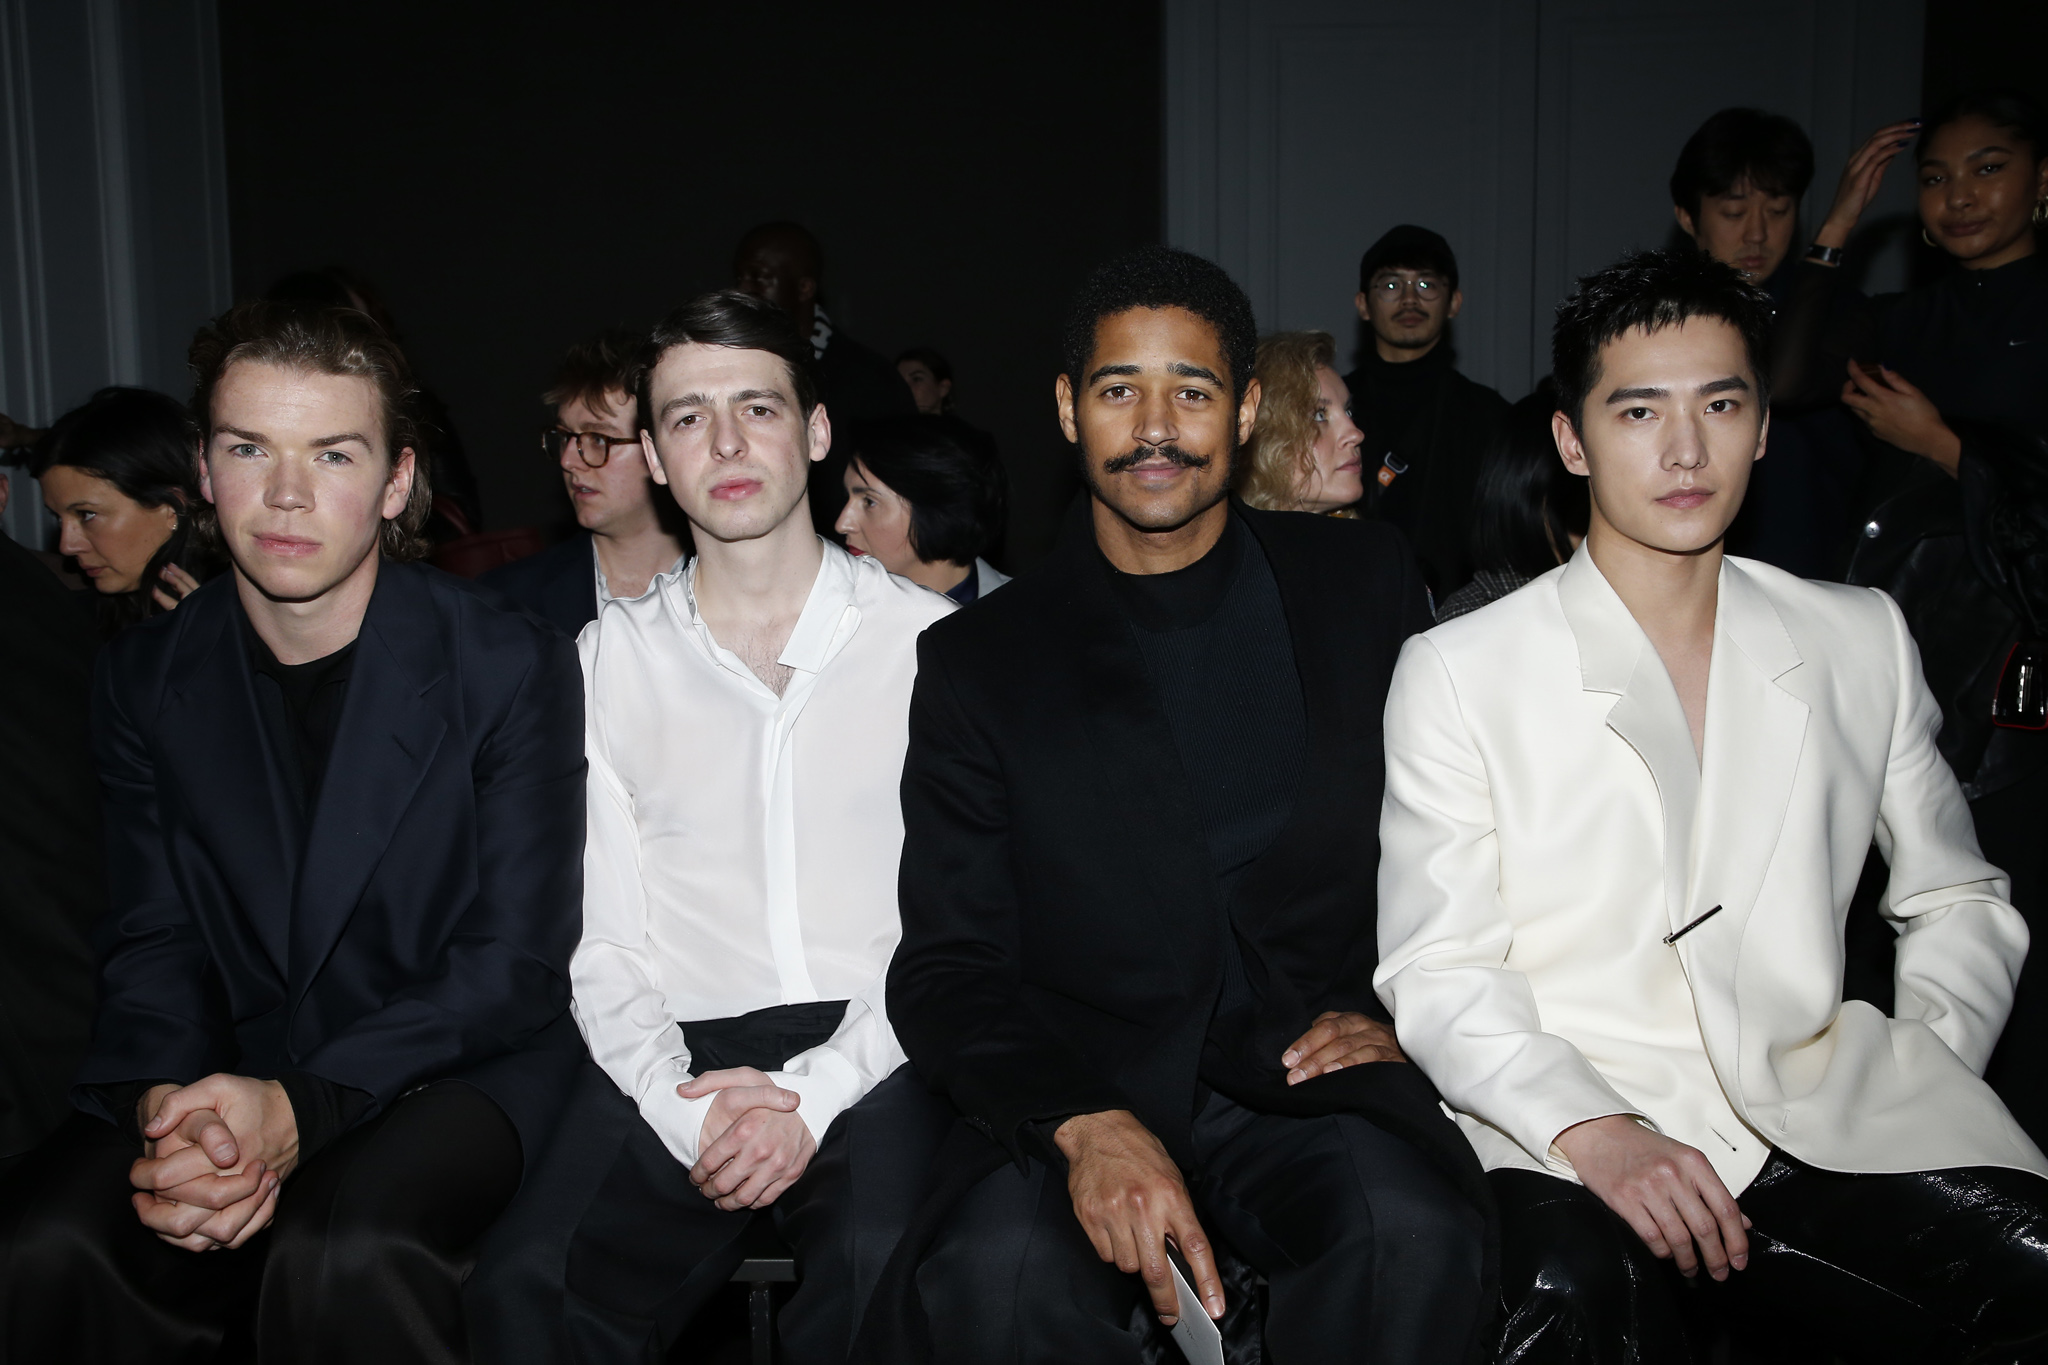 Will Poulter, Anthony Boyle, Alfred Enoch and Yang Yang in the front row